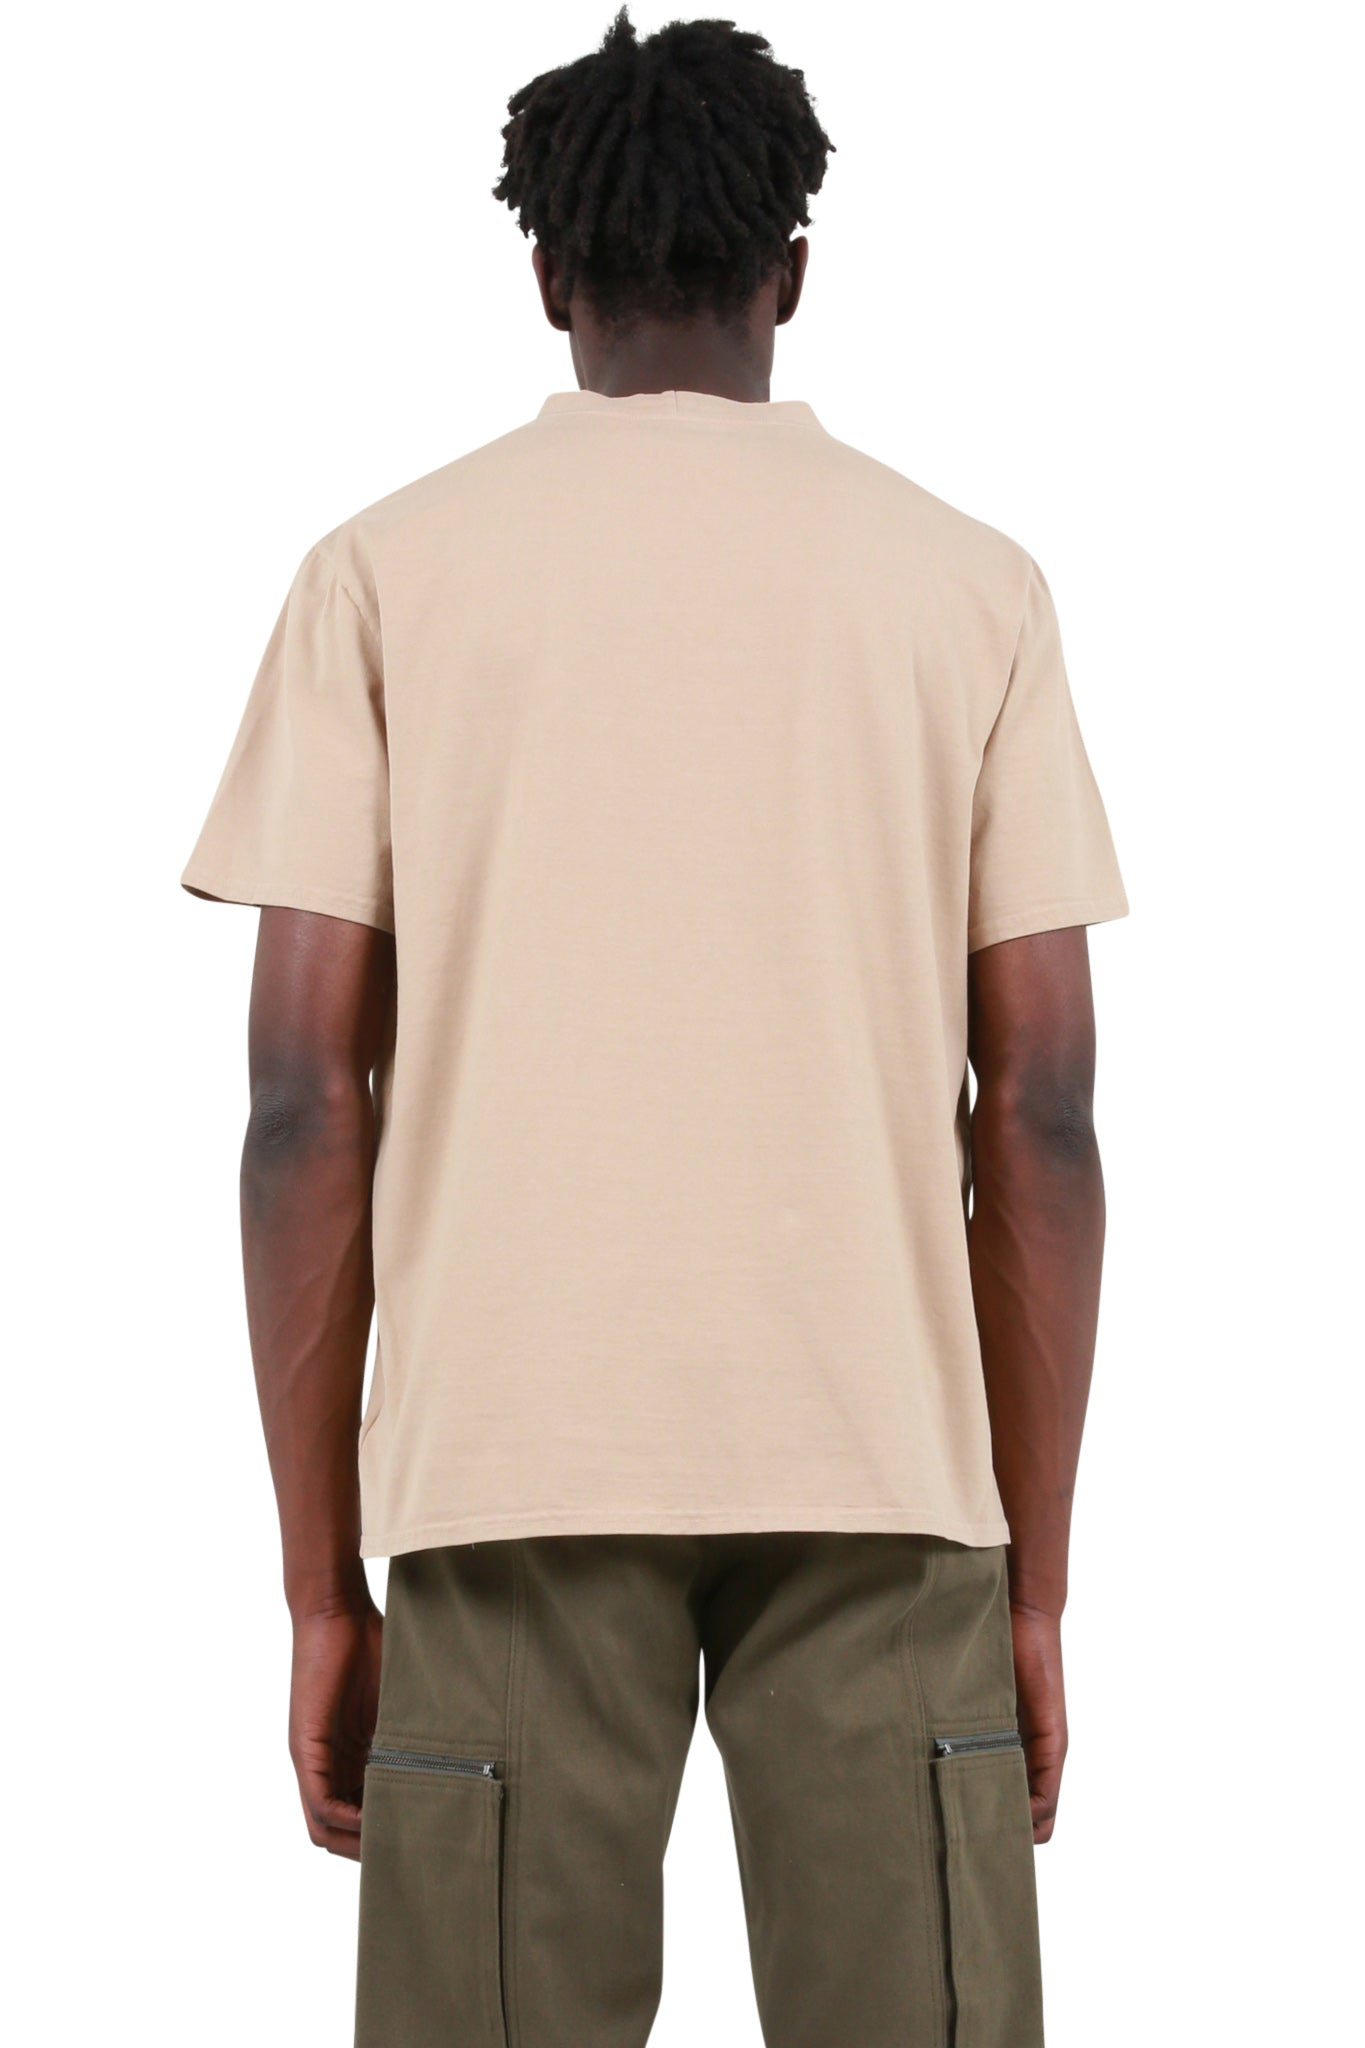 YEEZY Season 3 - Orange Heavy Knit T-Shirt